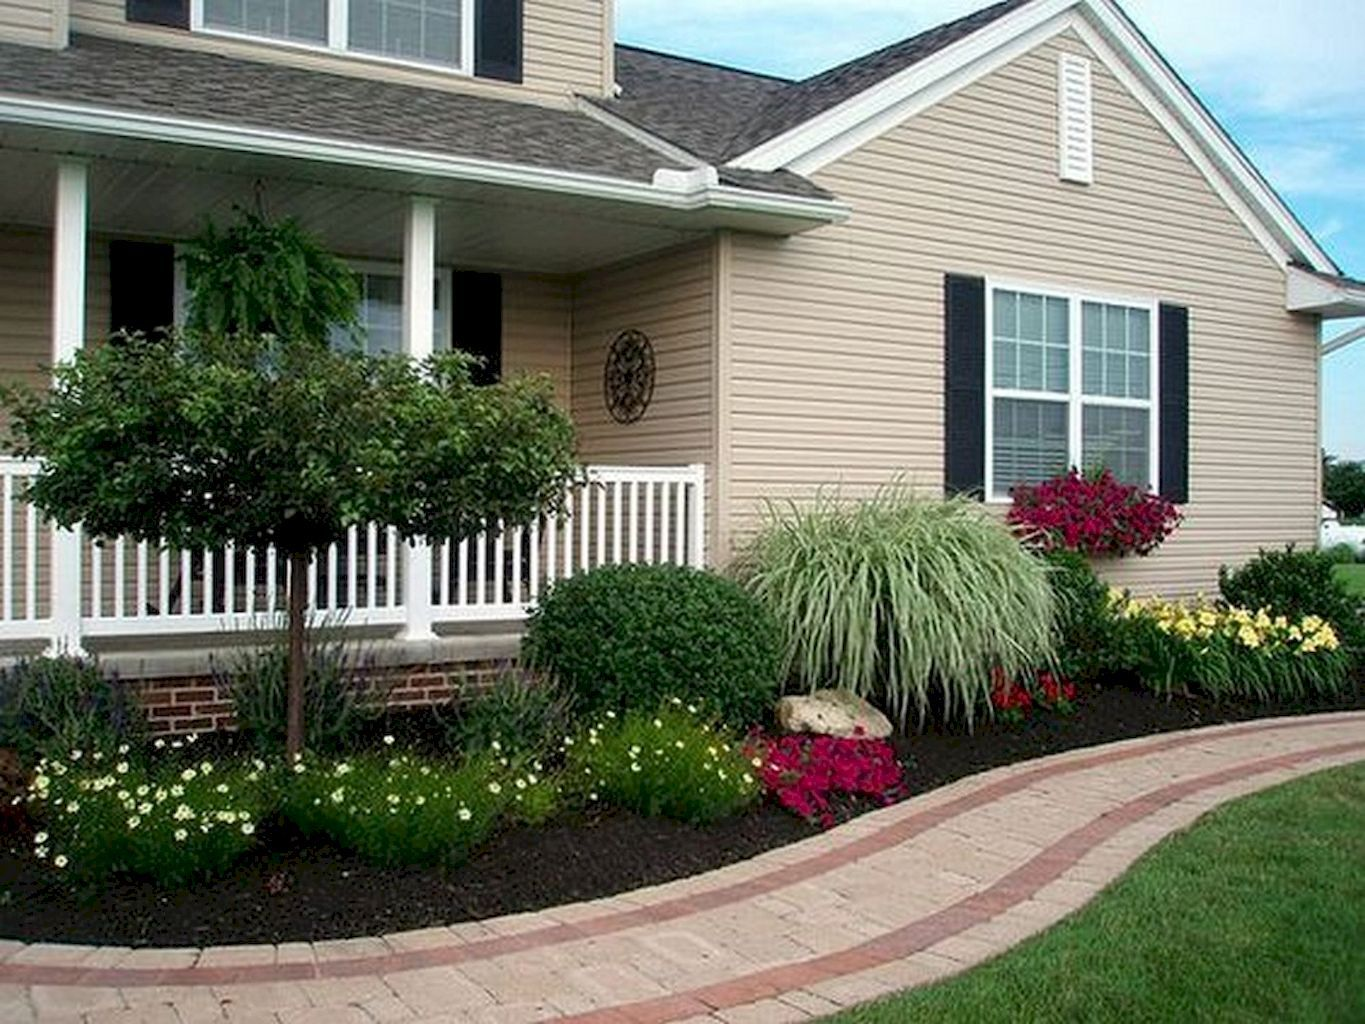 42 cheap landscaping ideas for your front yard that will on front yard landscaping ideas id=66779